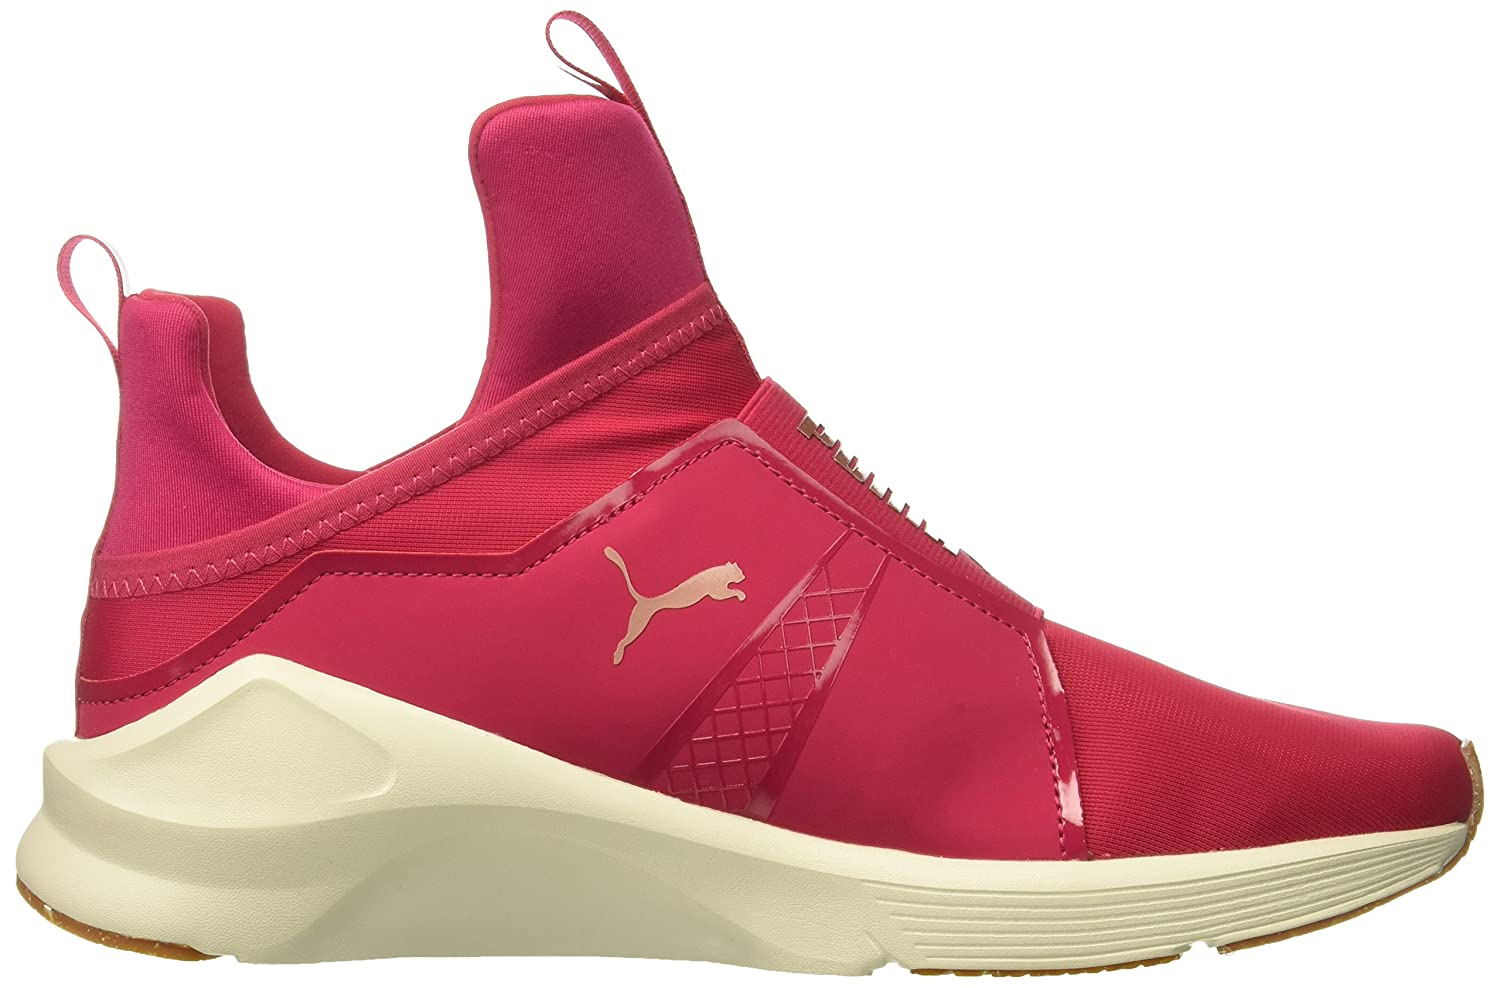 PUMA Women's Fierce VR Wn Sneaker B01MRY2DKL 9.5 B(M) US|Pink Love Potion/Whisper White